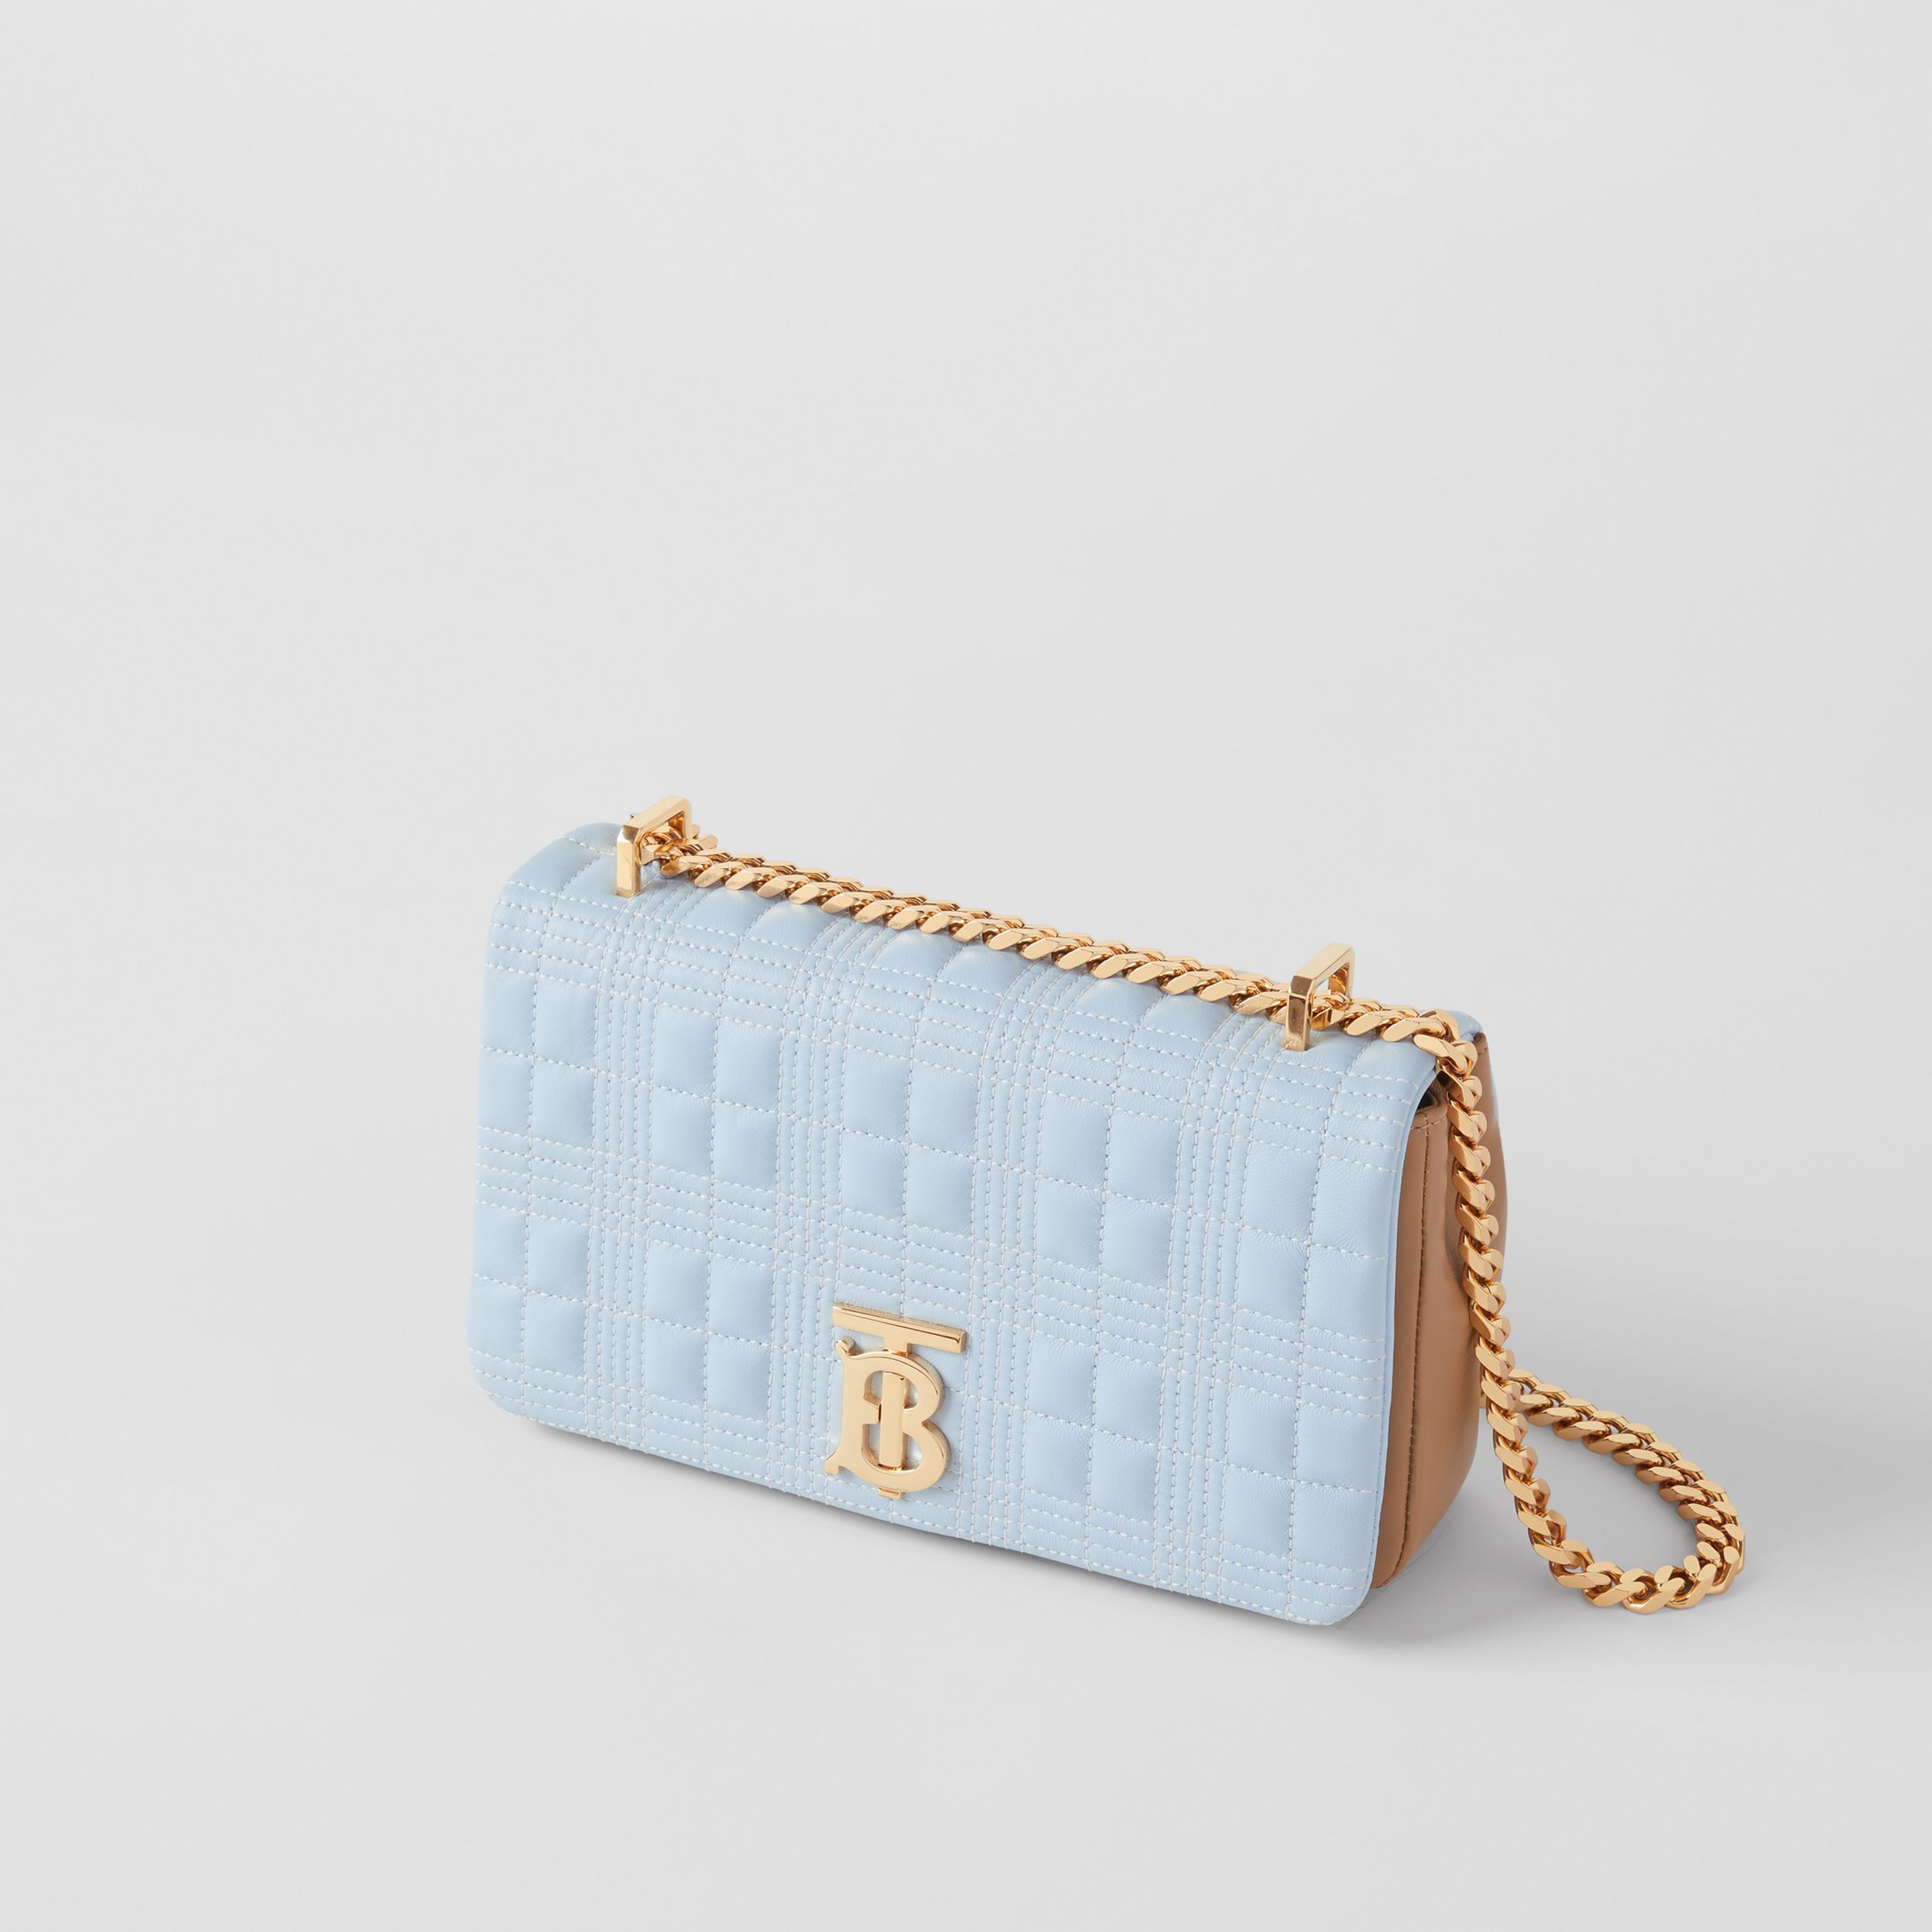 Small Quilted Tri-tone Lambskin Lola Bag in Pale Blue/camel/black - Women | Burberry - 4